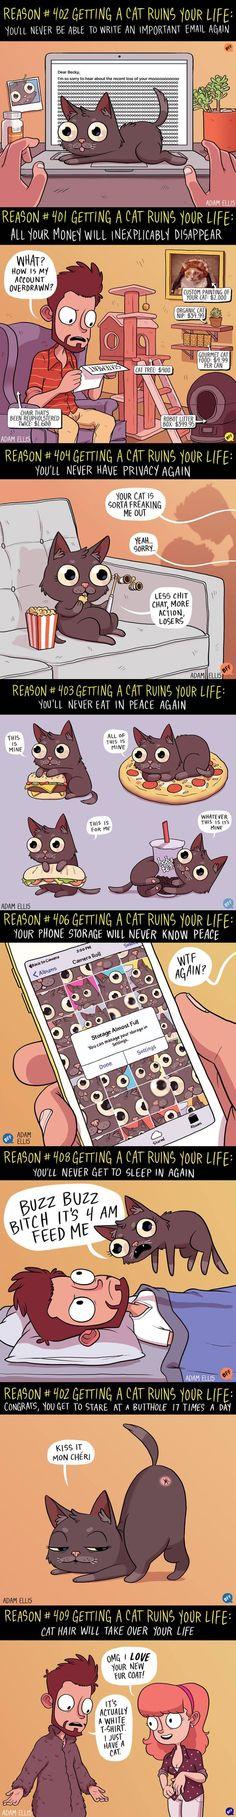 8 Ways Getting A Cat Ruins Your Life (By Adam Ellis) - 9GAG